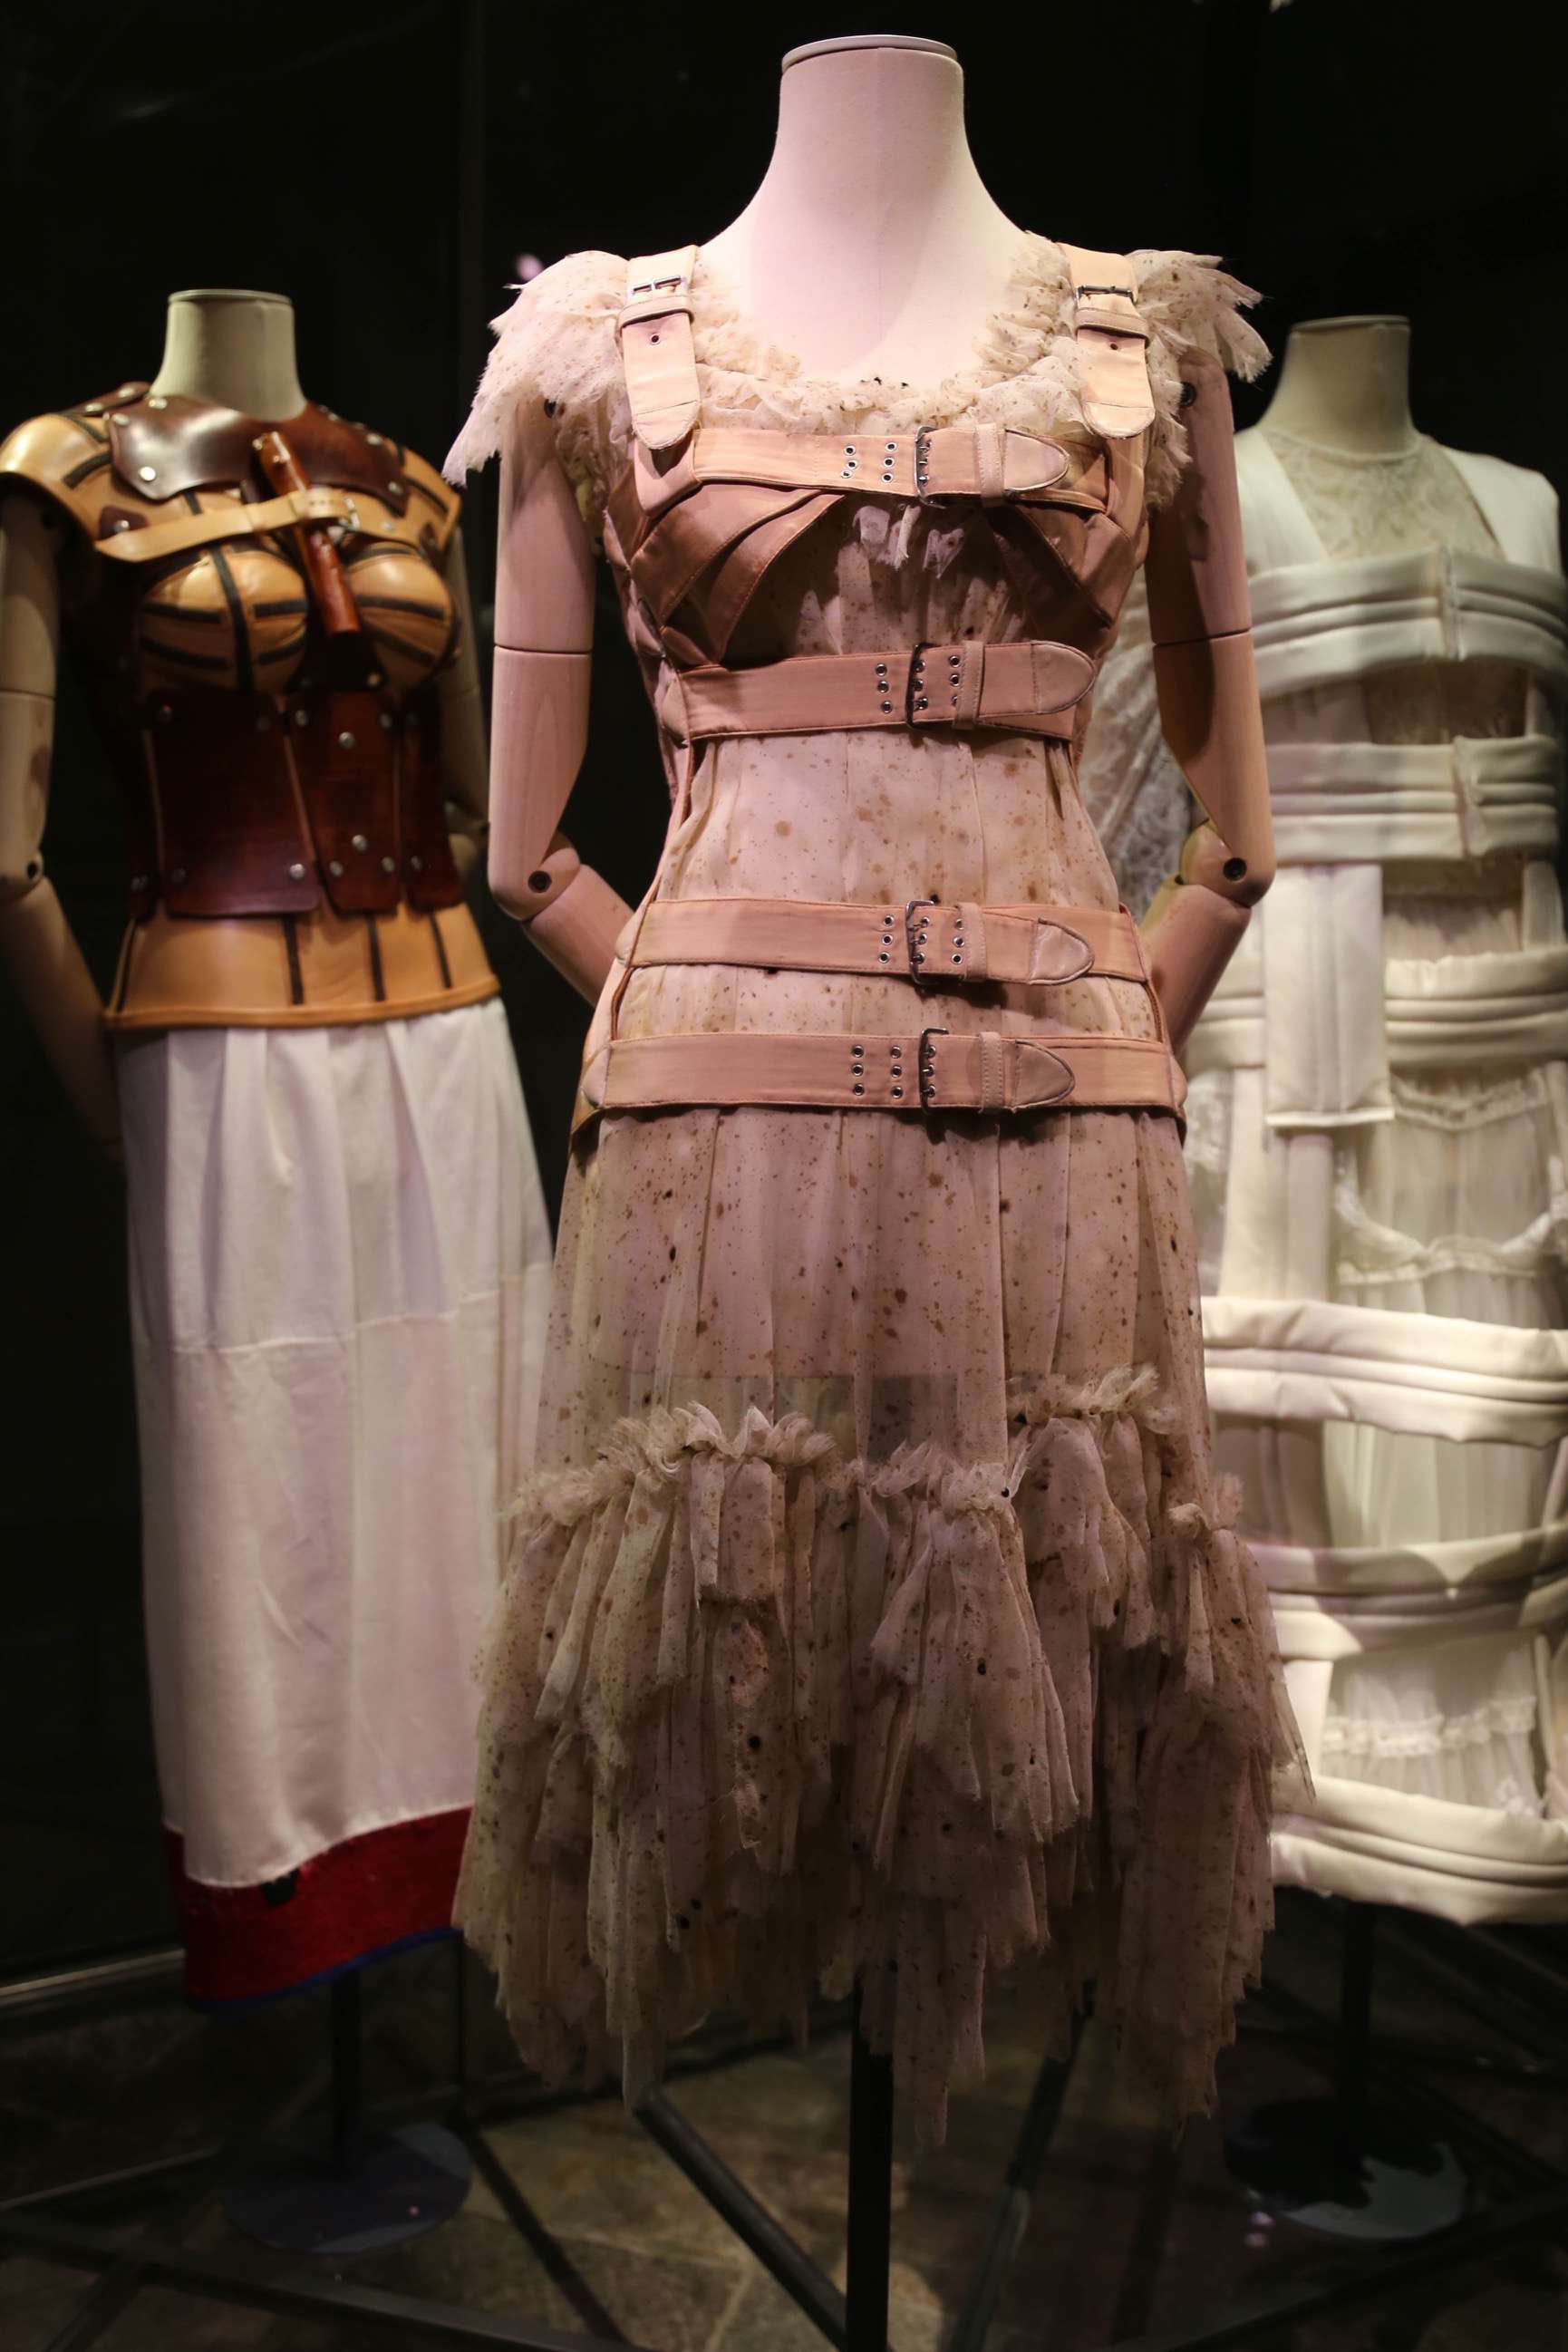 Beneath the colorful and flowing dresses Frida Kahlo wore was a cumbersome set of harnesses and braces.